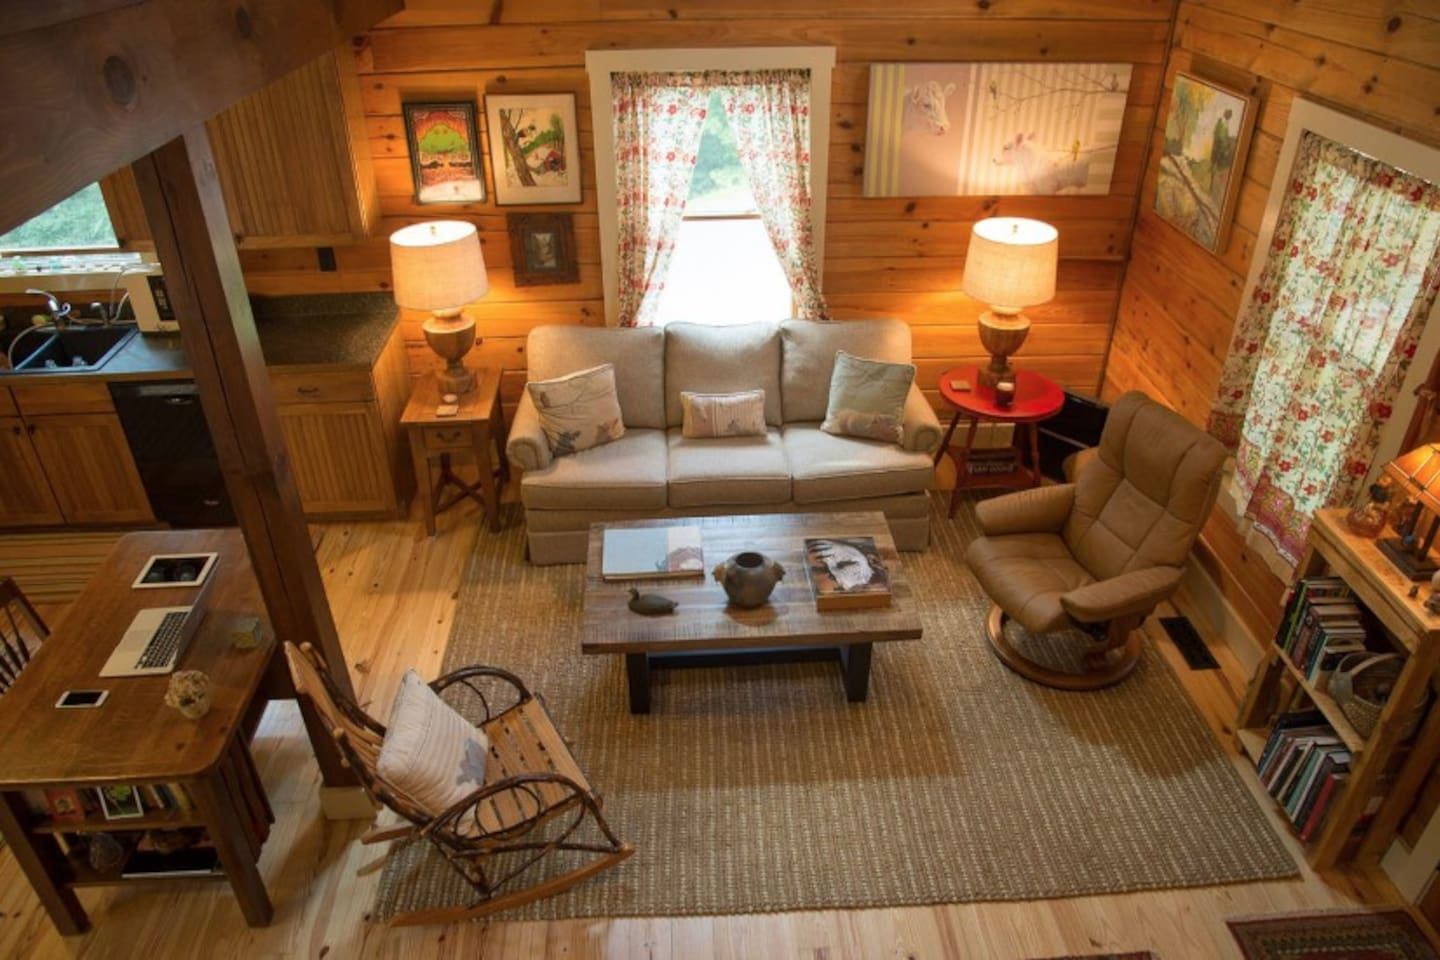 Welcome to my cozy cabin located in the woodsy, walkable neighborhood of Christmount. Enjoy hiking trails right out the front door through 400 acres of conservation wooded land. A 5 minute drive to the heart of Black Mountain, Lake Tomahawk, Montreat.